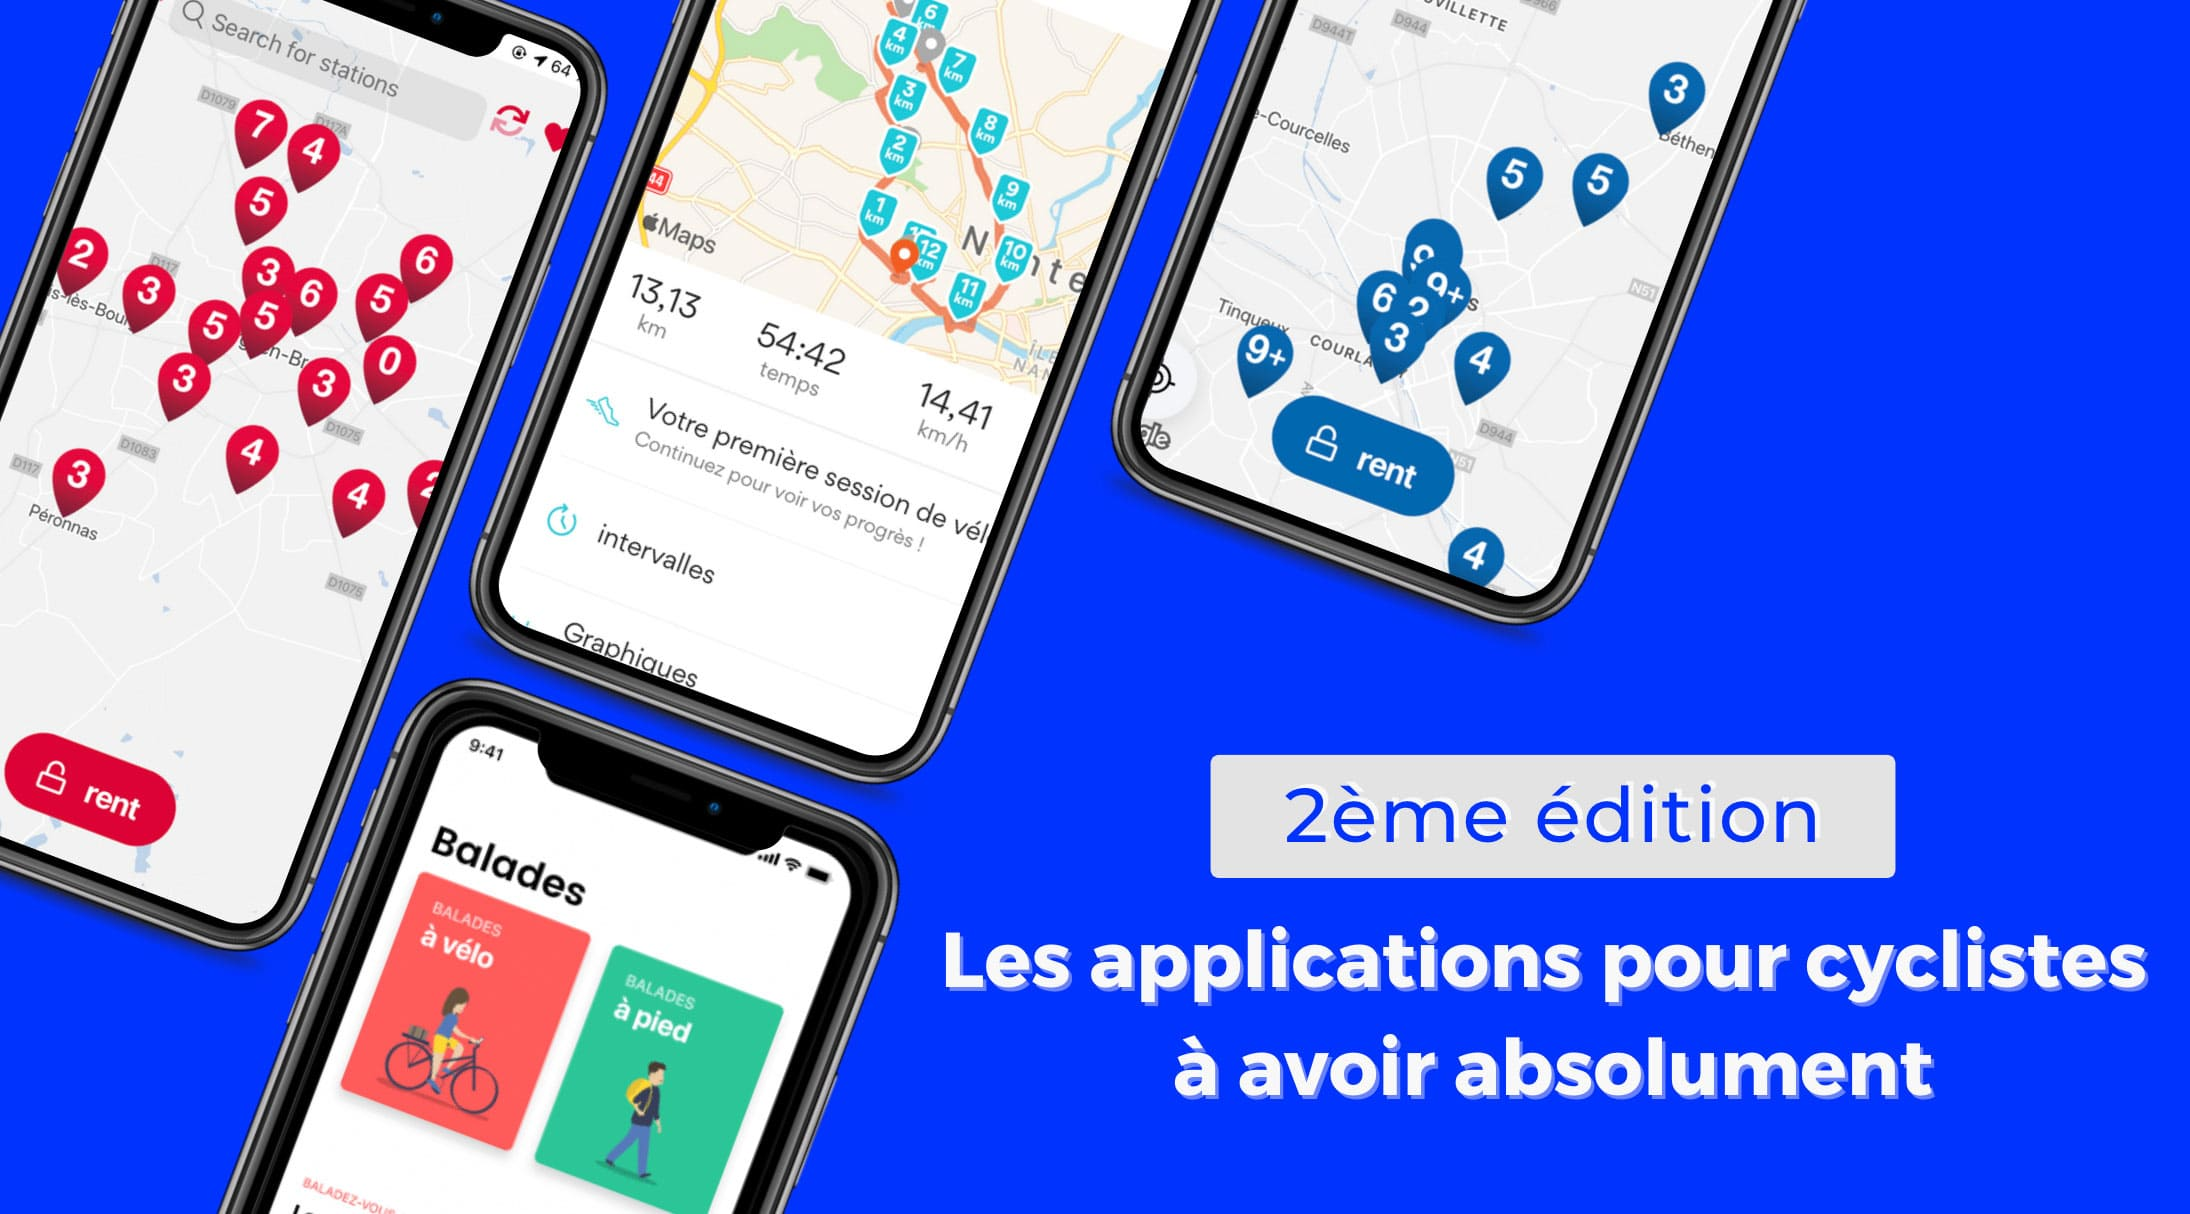 image sélection d'applications pour cyclistes